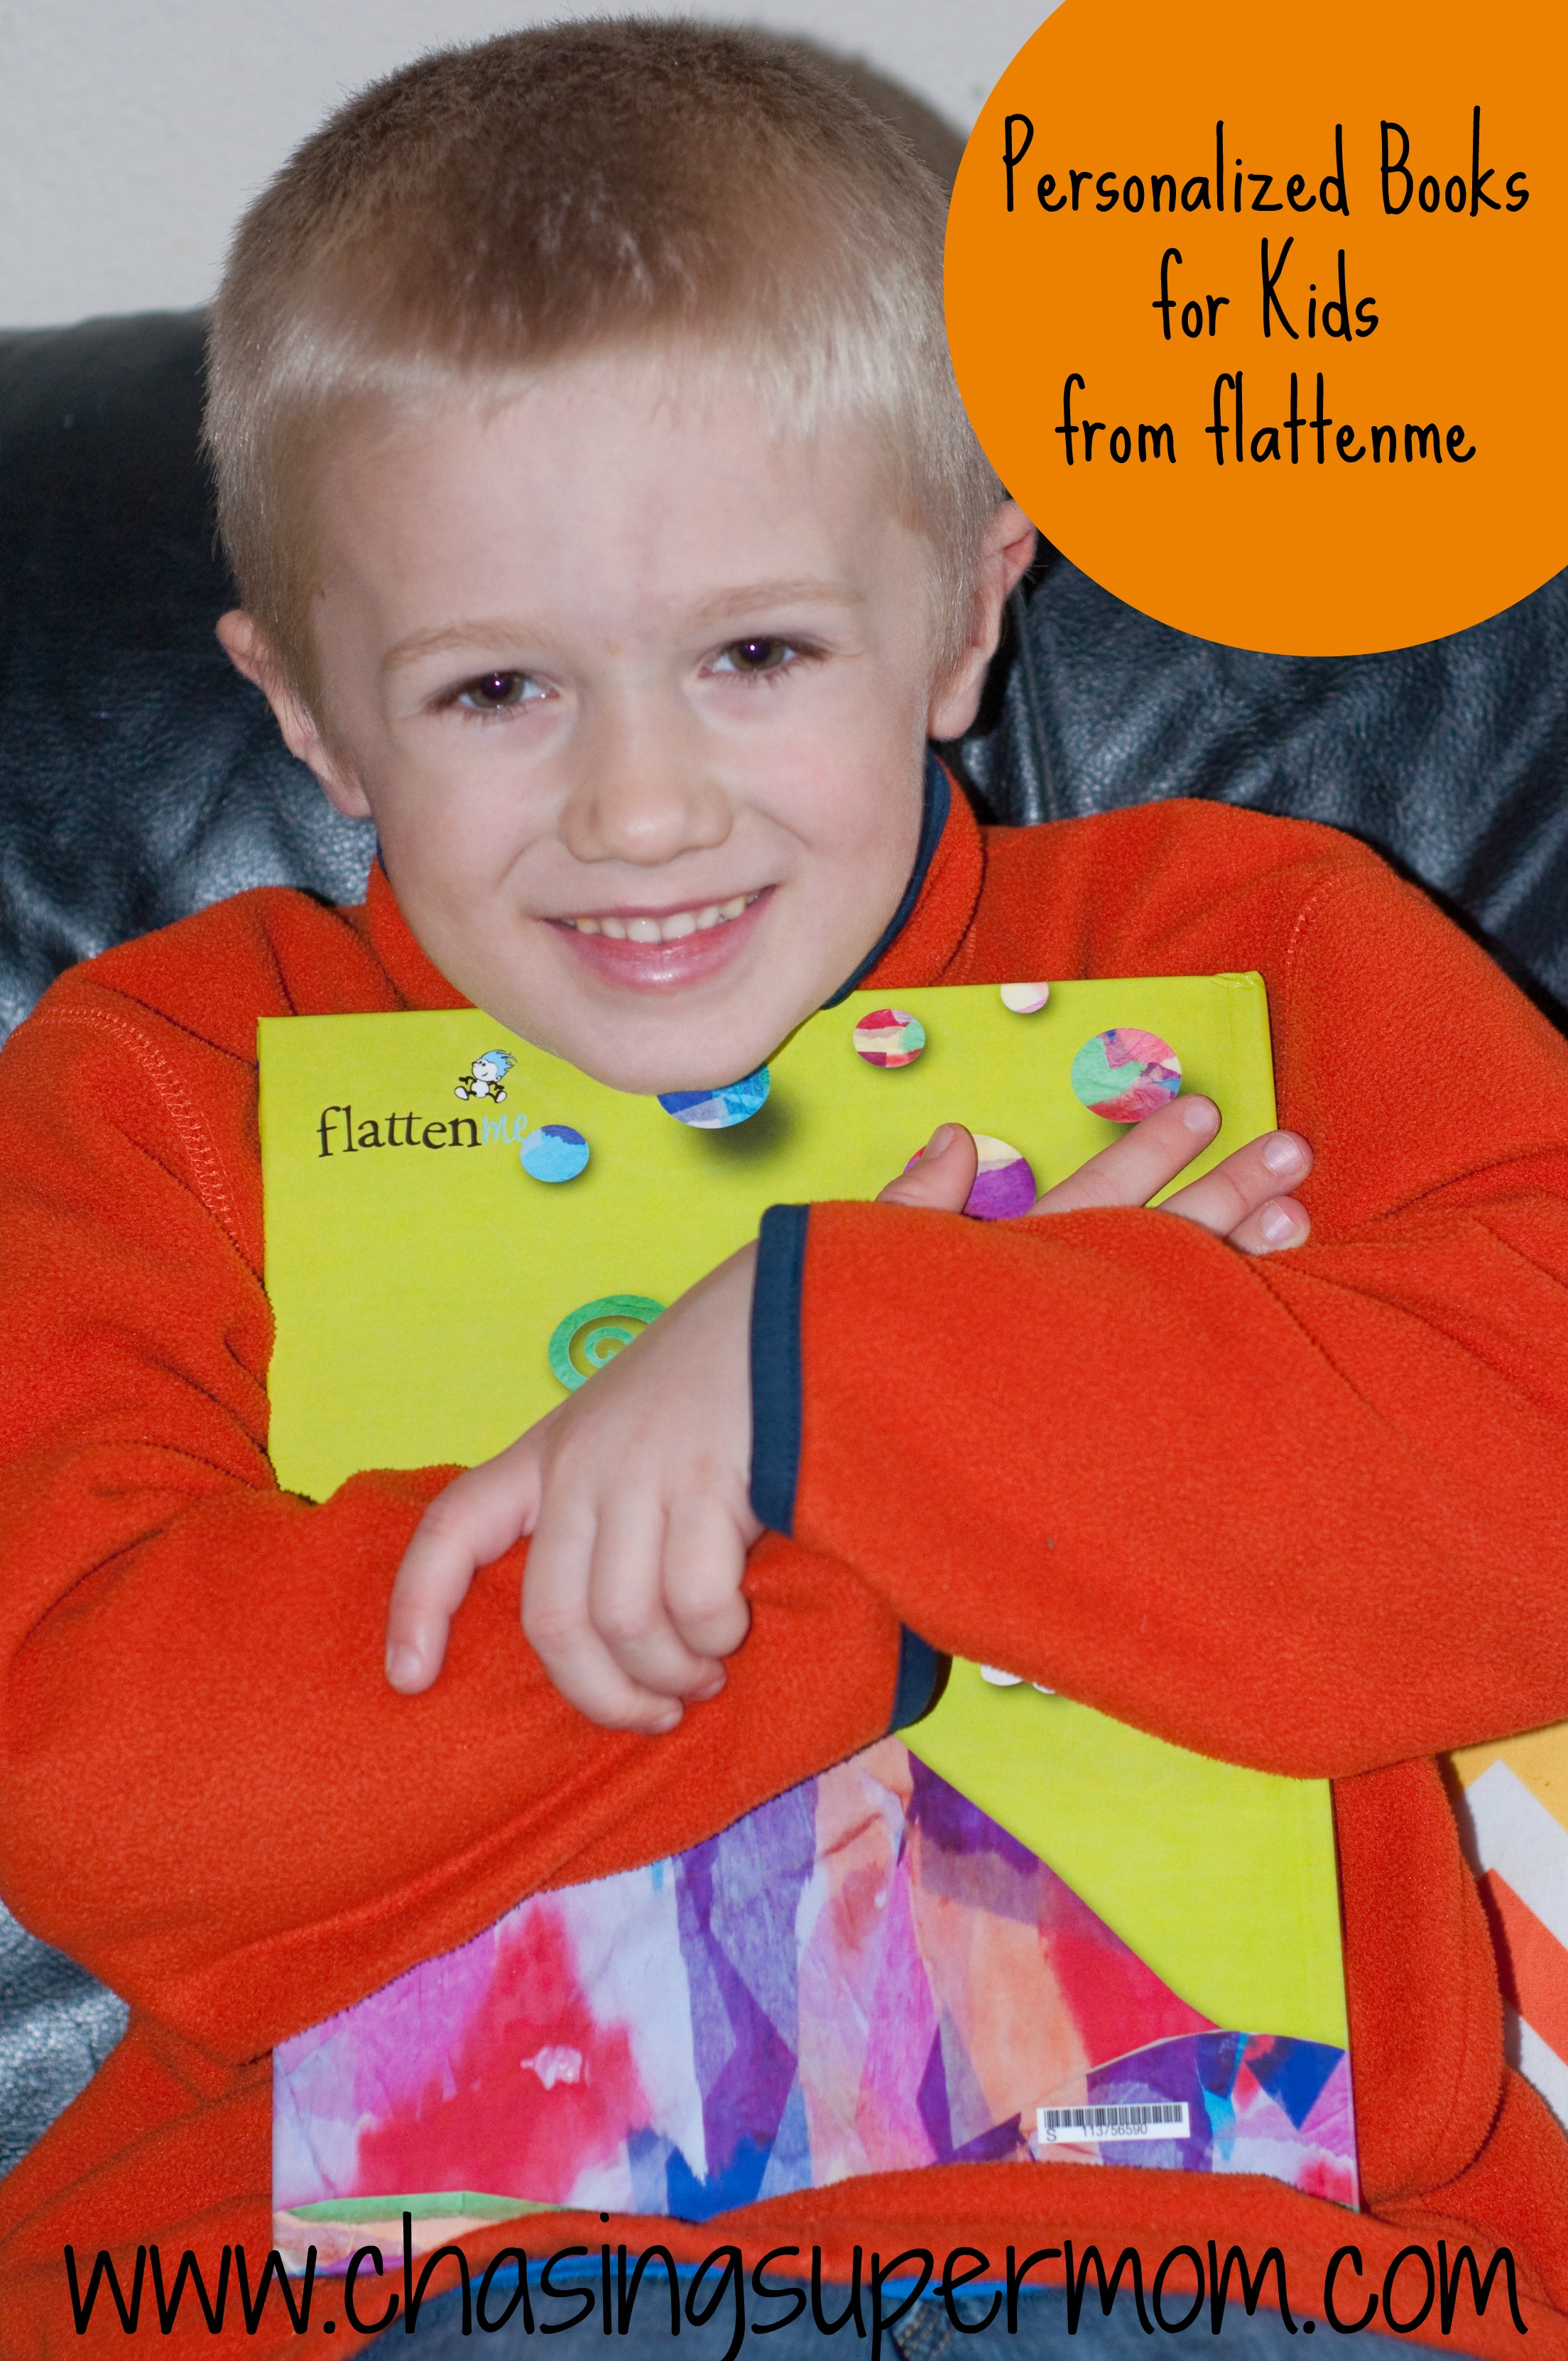 Personalized Children's Book from flattenme – Unique Christmas Gift for Kids